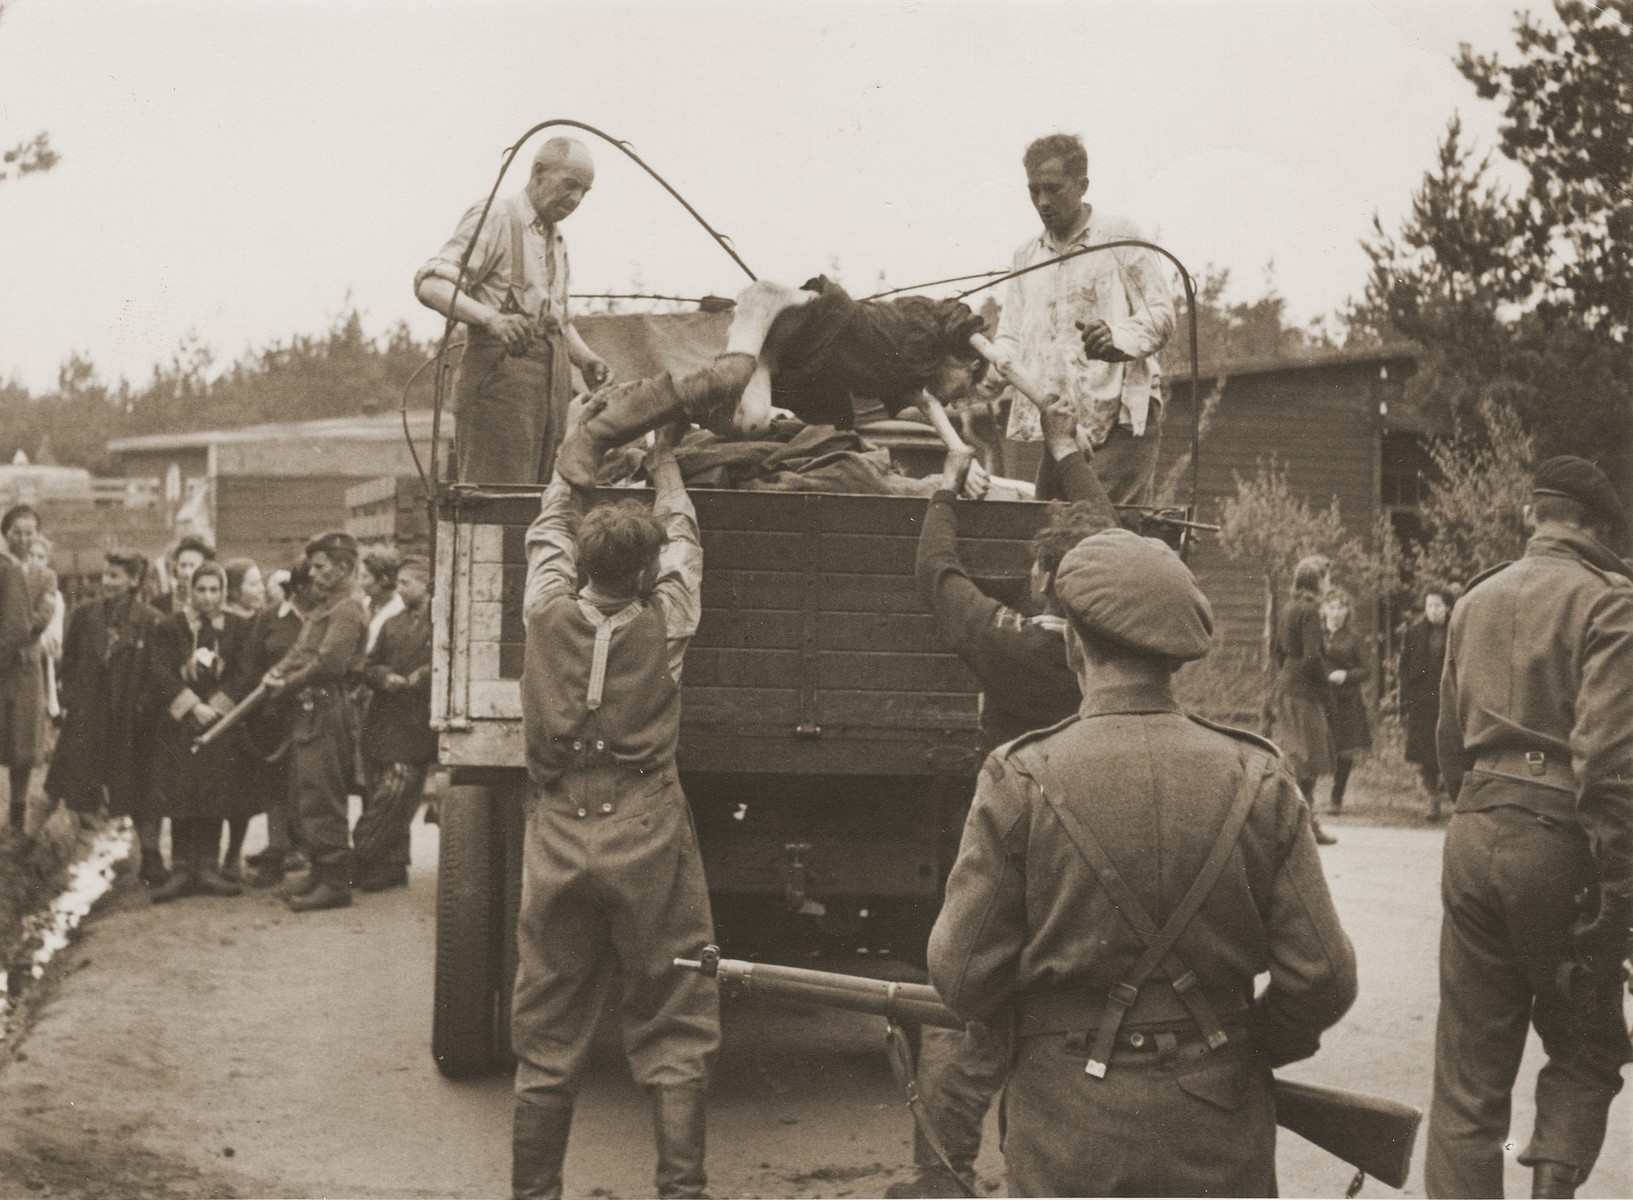 Captured SS guards, under British guard, load the corpses of prisoners who died in Bergen-Belsen concentration camp.